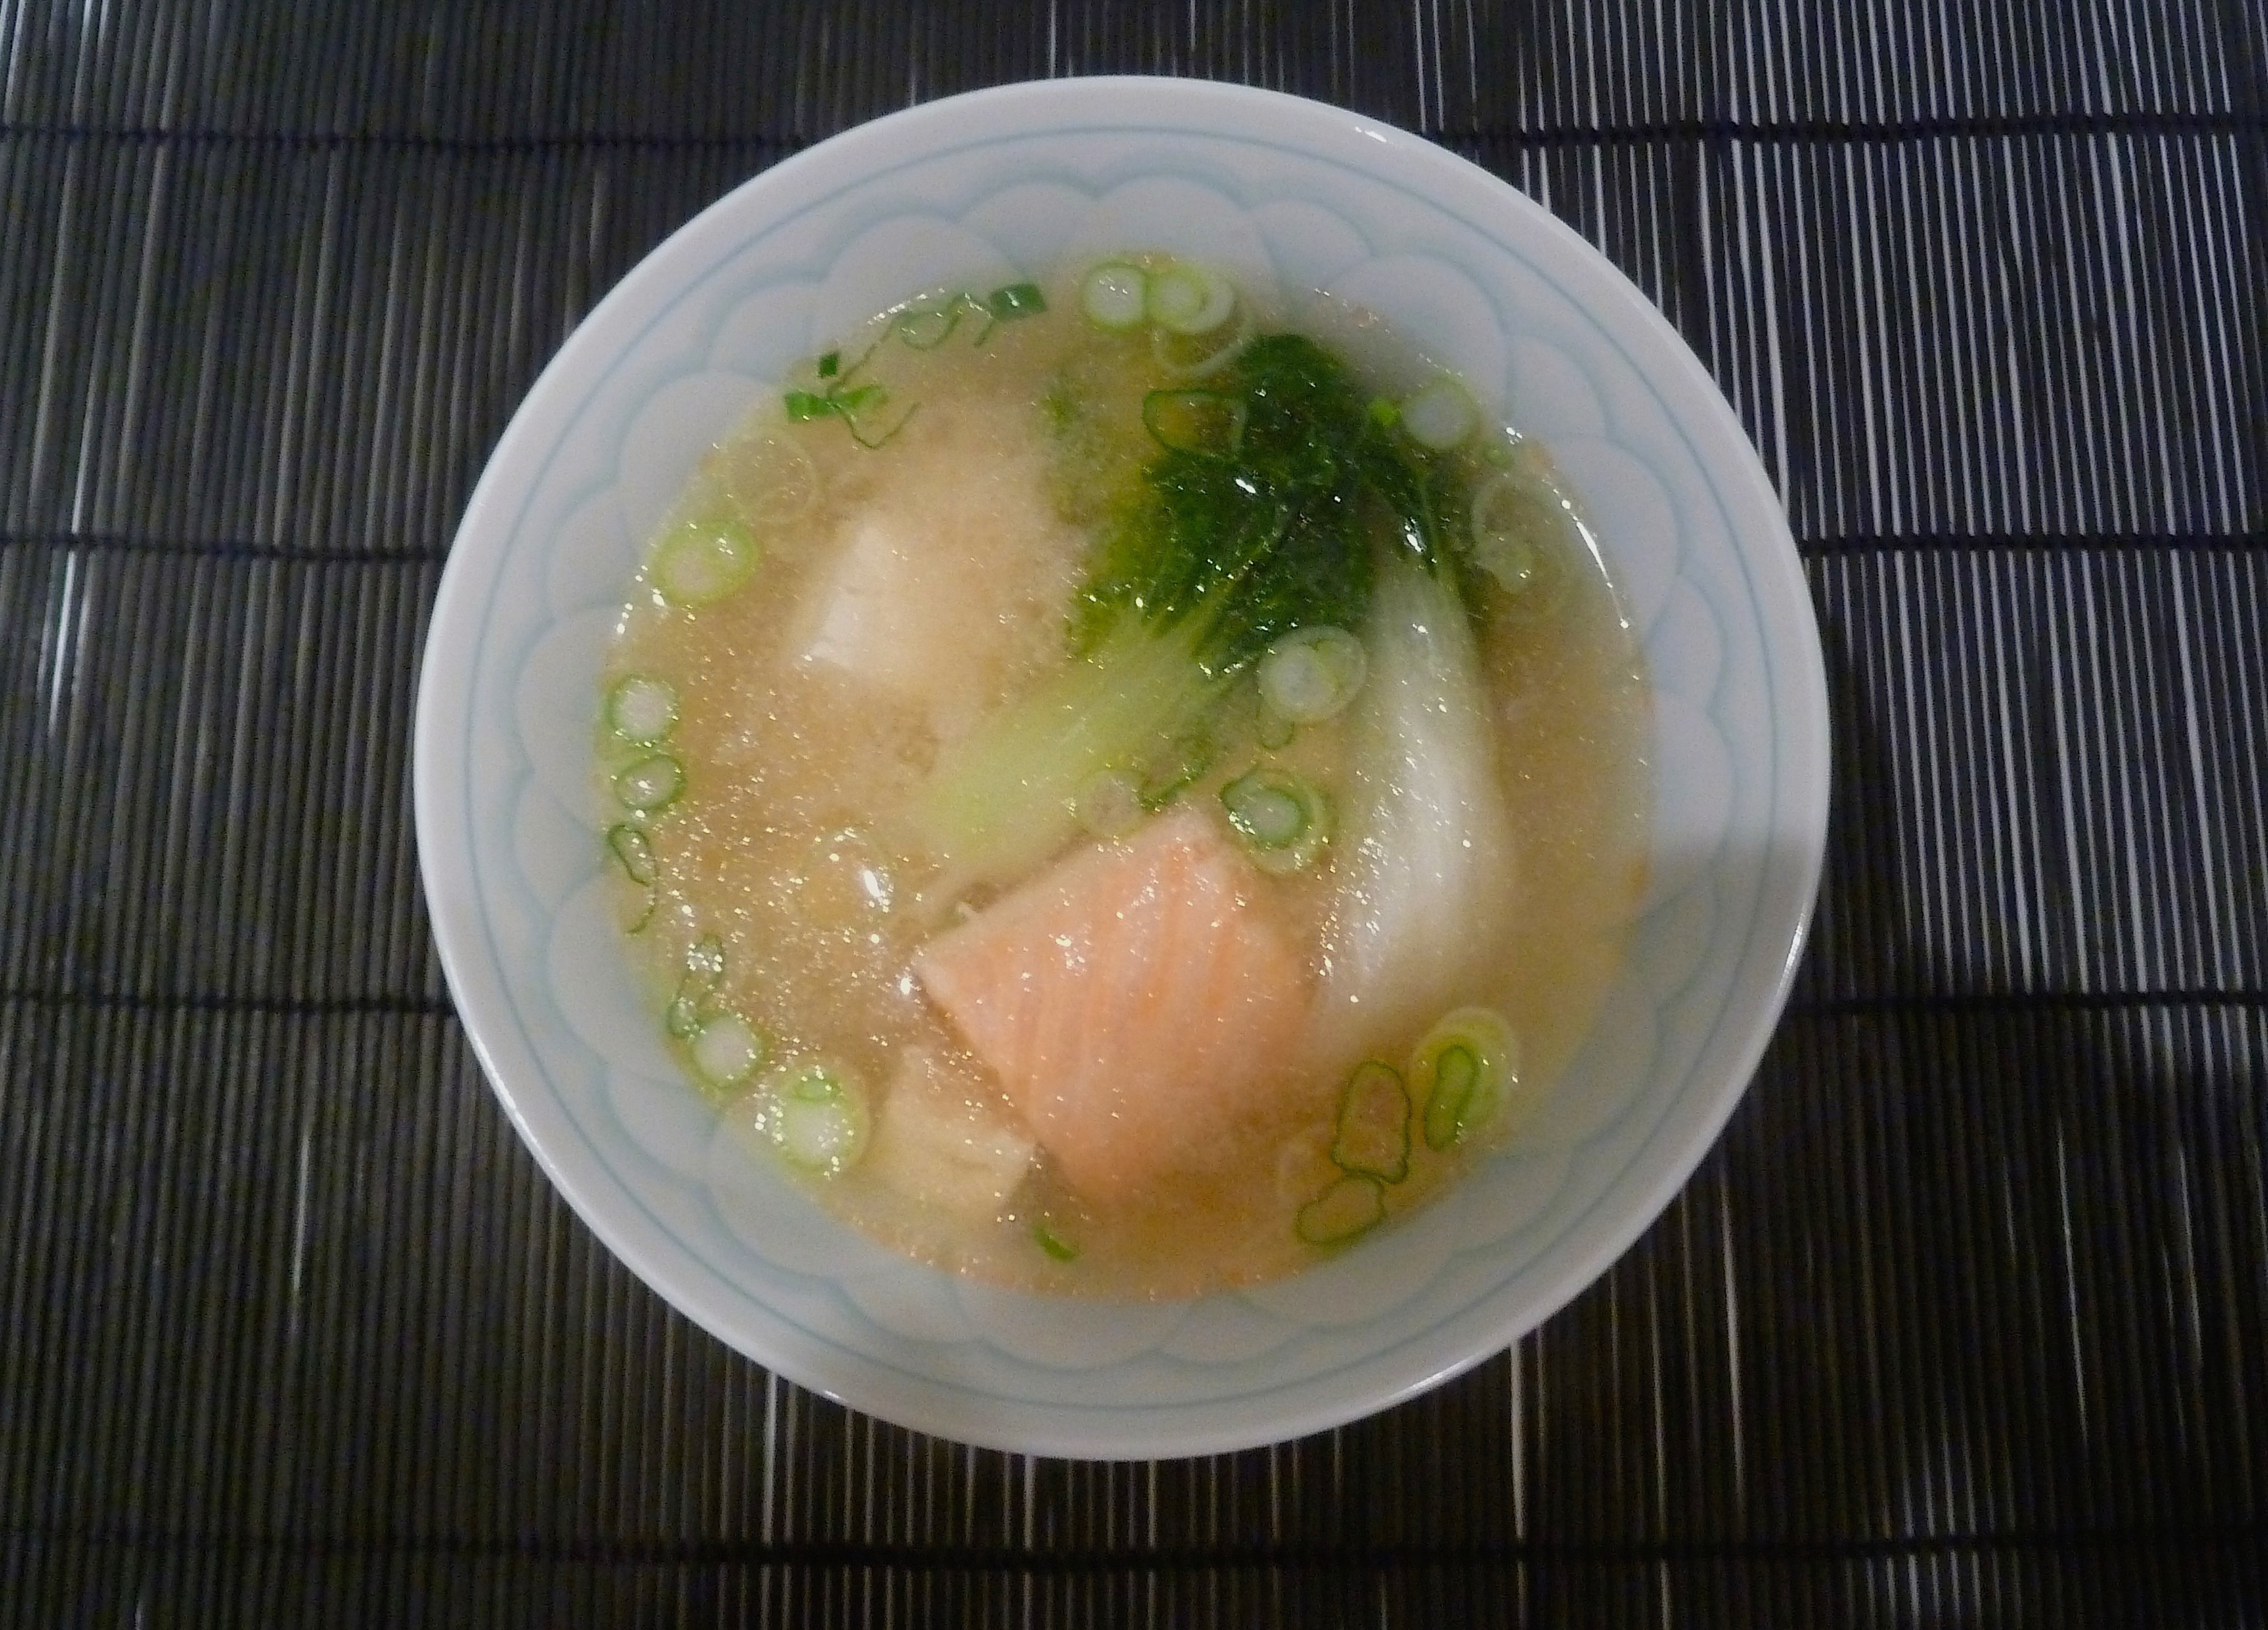 salmon miso soup, a one bowl meal for winter | spicebox travels